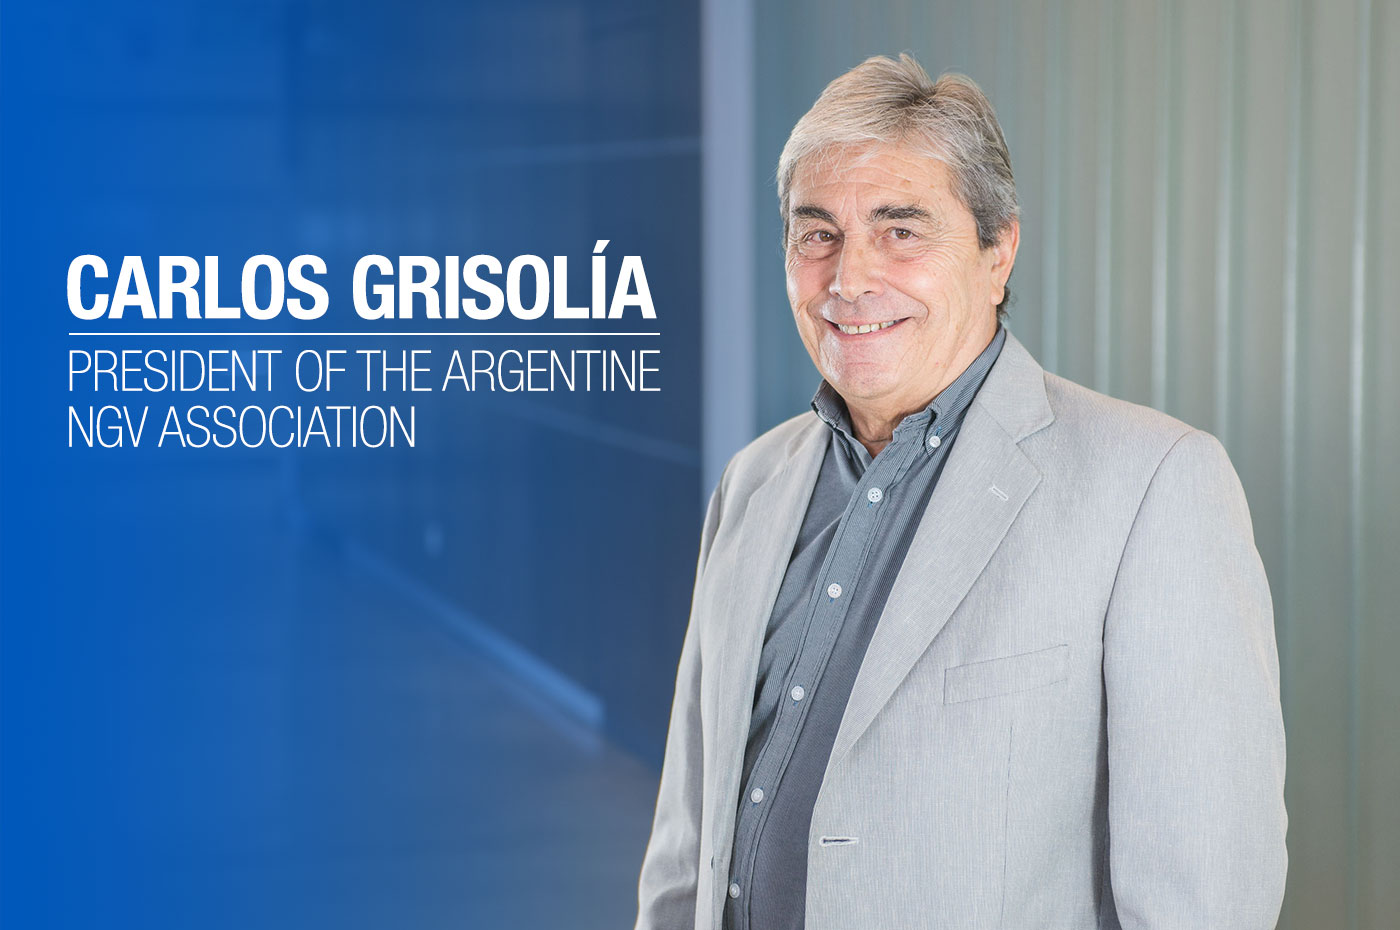 Carlos Grisolía - President of the Argentine NGV Association